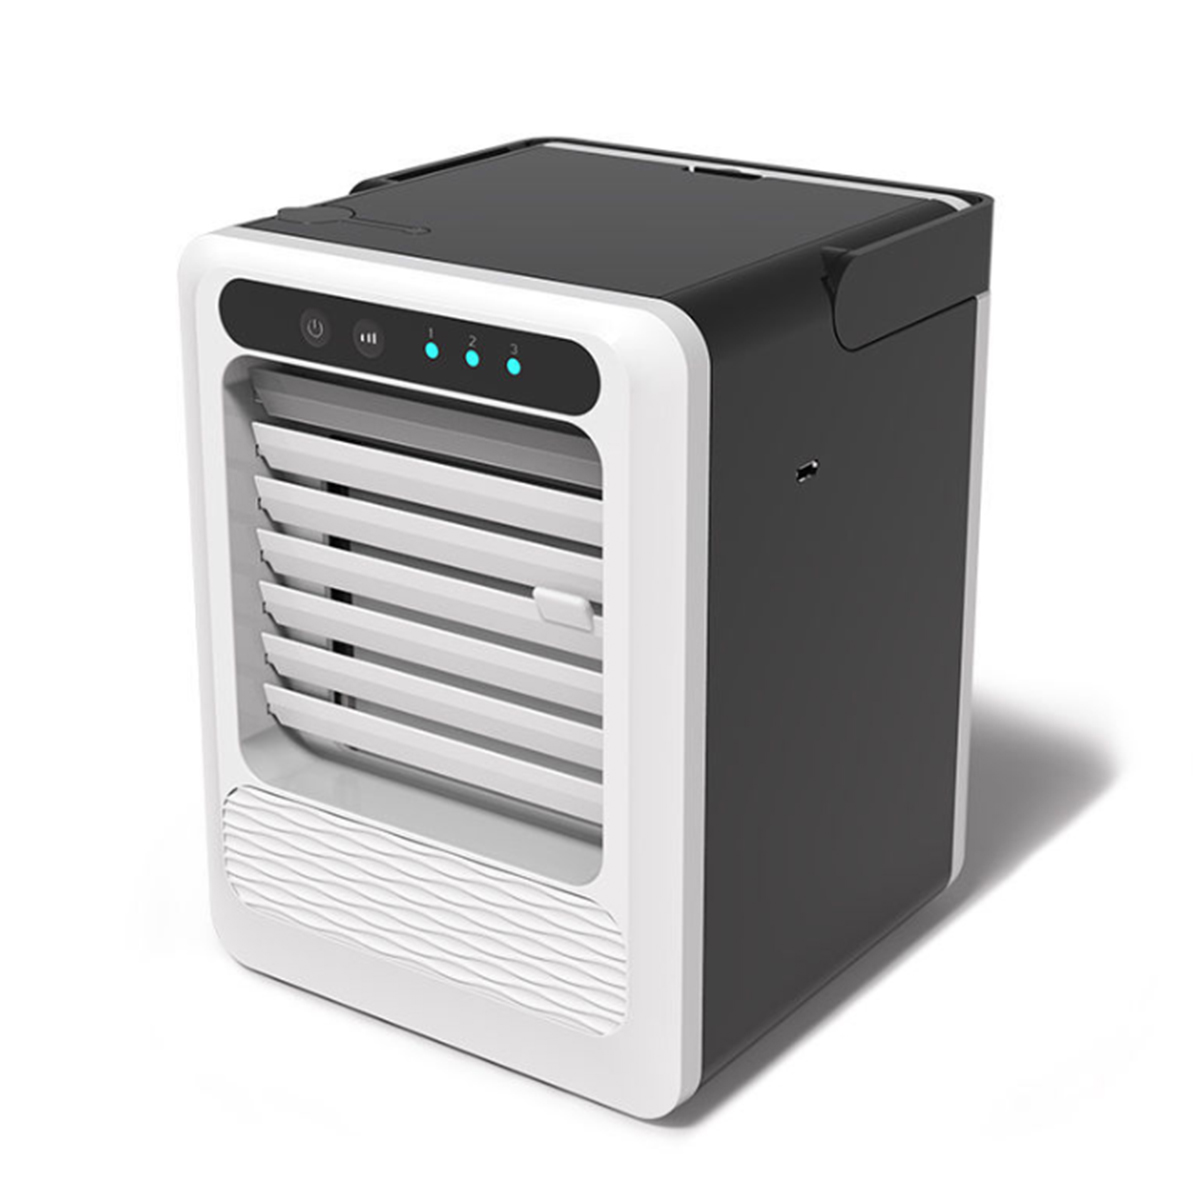 Mini USB Air Conditioner Portable Air Cooler Fan Cooling Humidifier Home Office Desk Air Conditioning 3 Speeds Adjustment